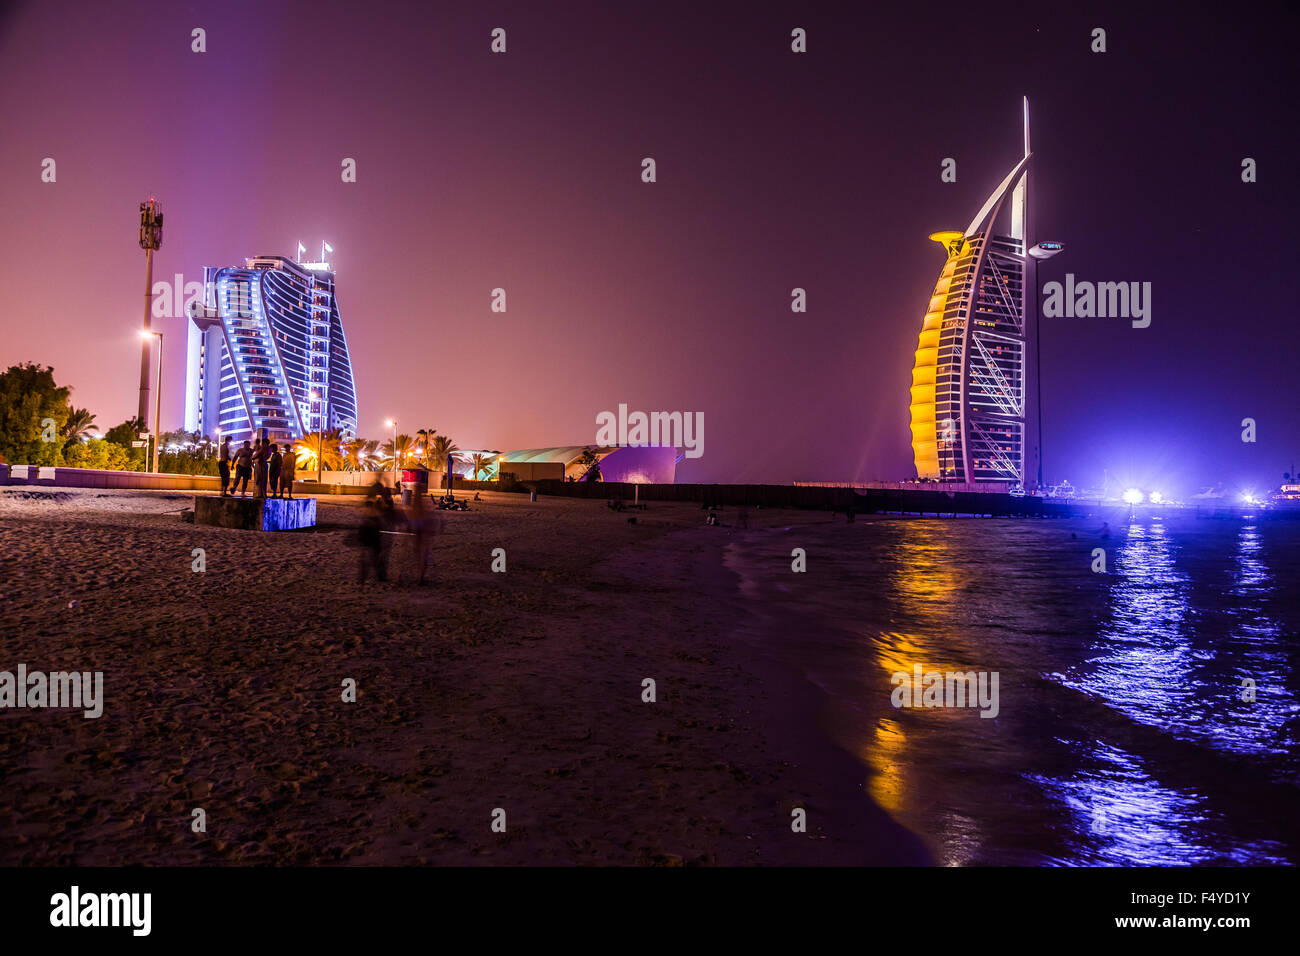 DUBAI, UAE - NOVEMBER 14 :The world's first seven stars luxury hotel Burj Al Arab, November 14, 2012 in Dubai, - Stock Image